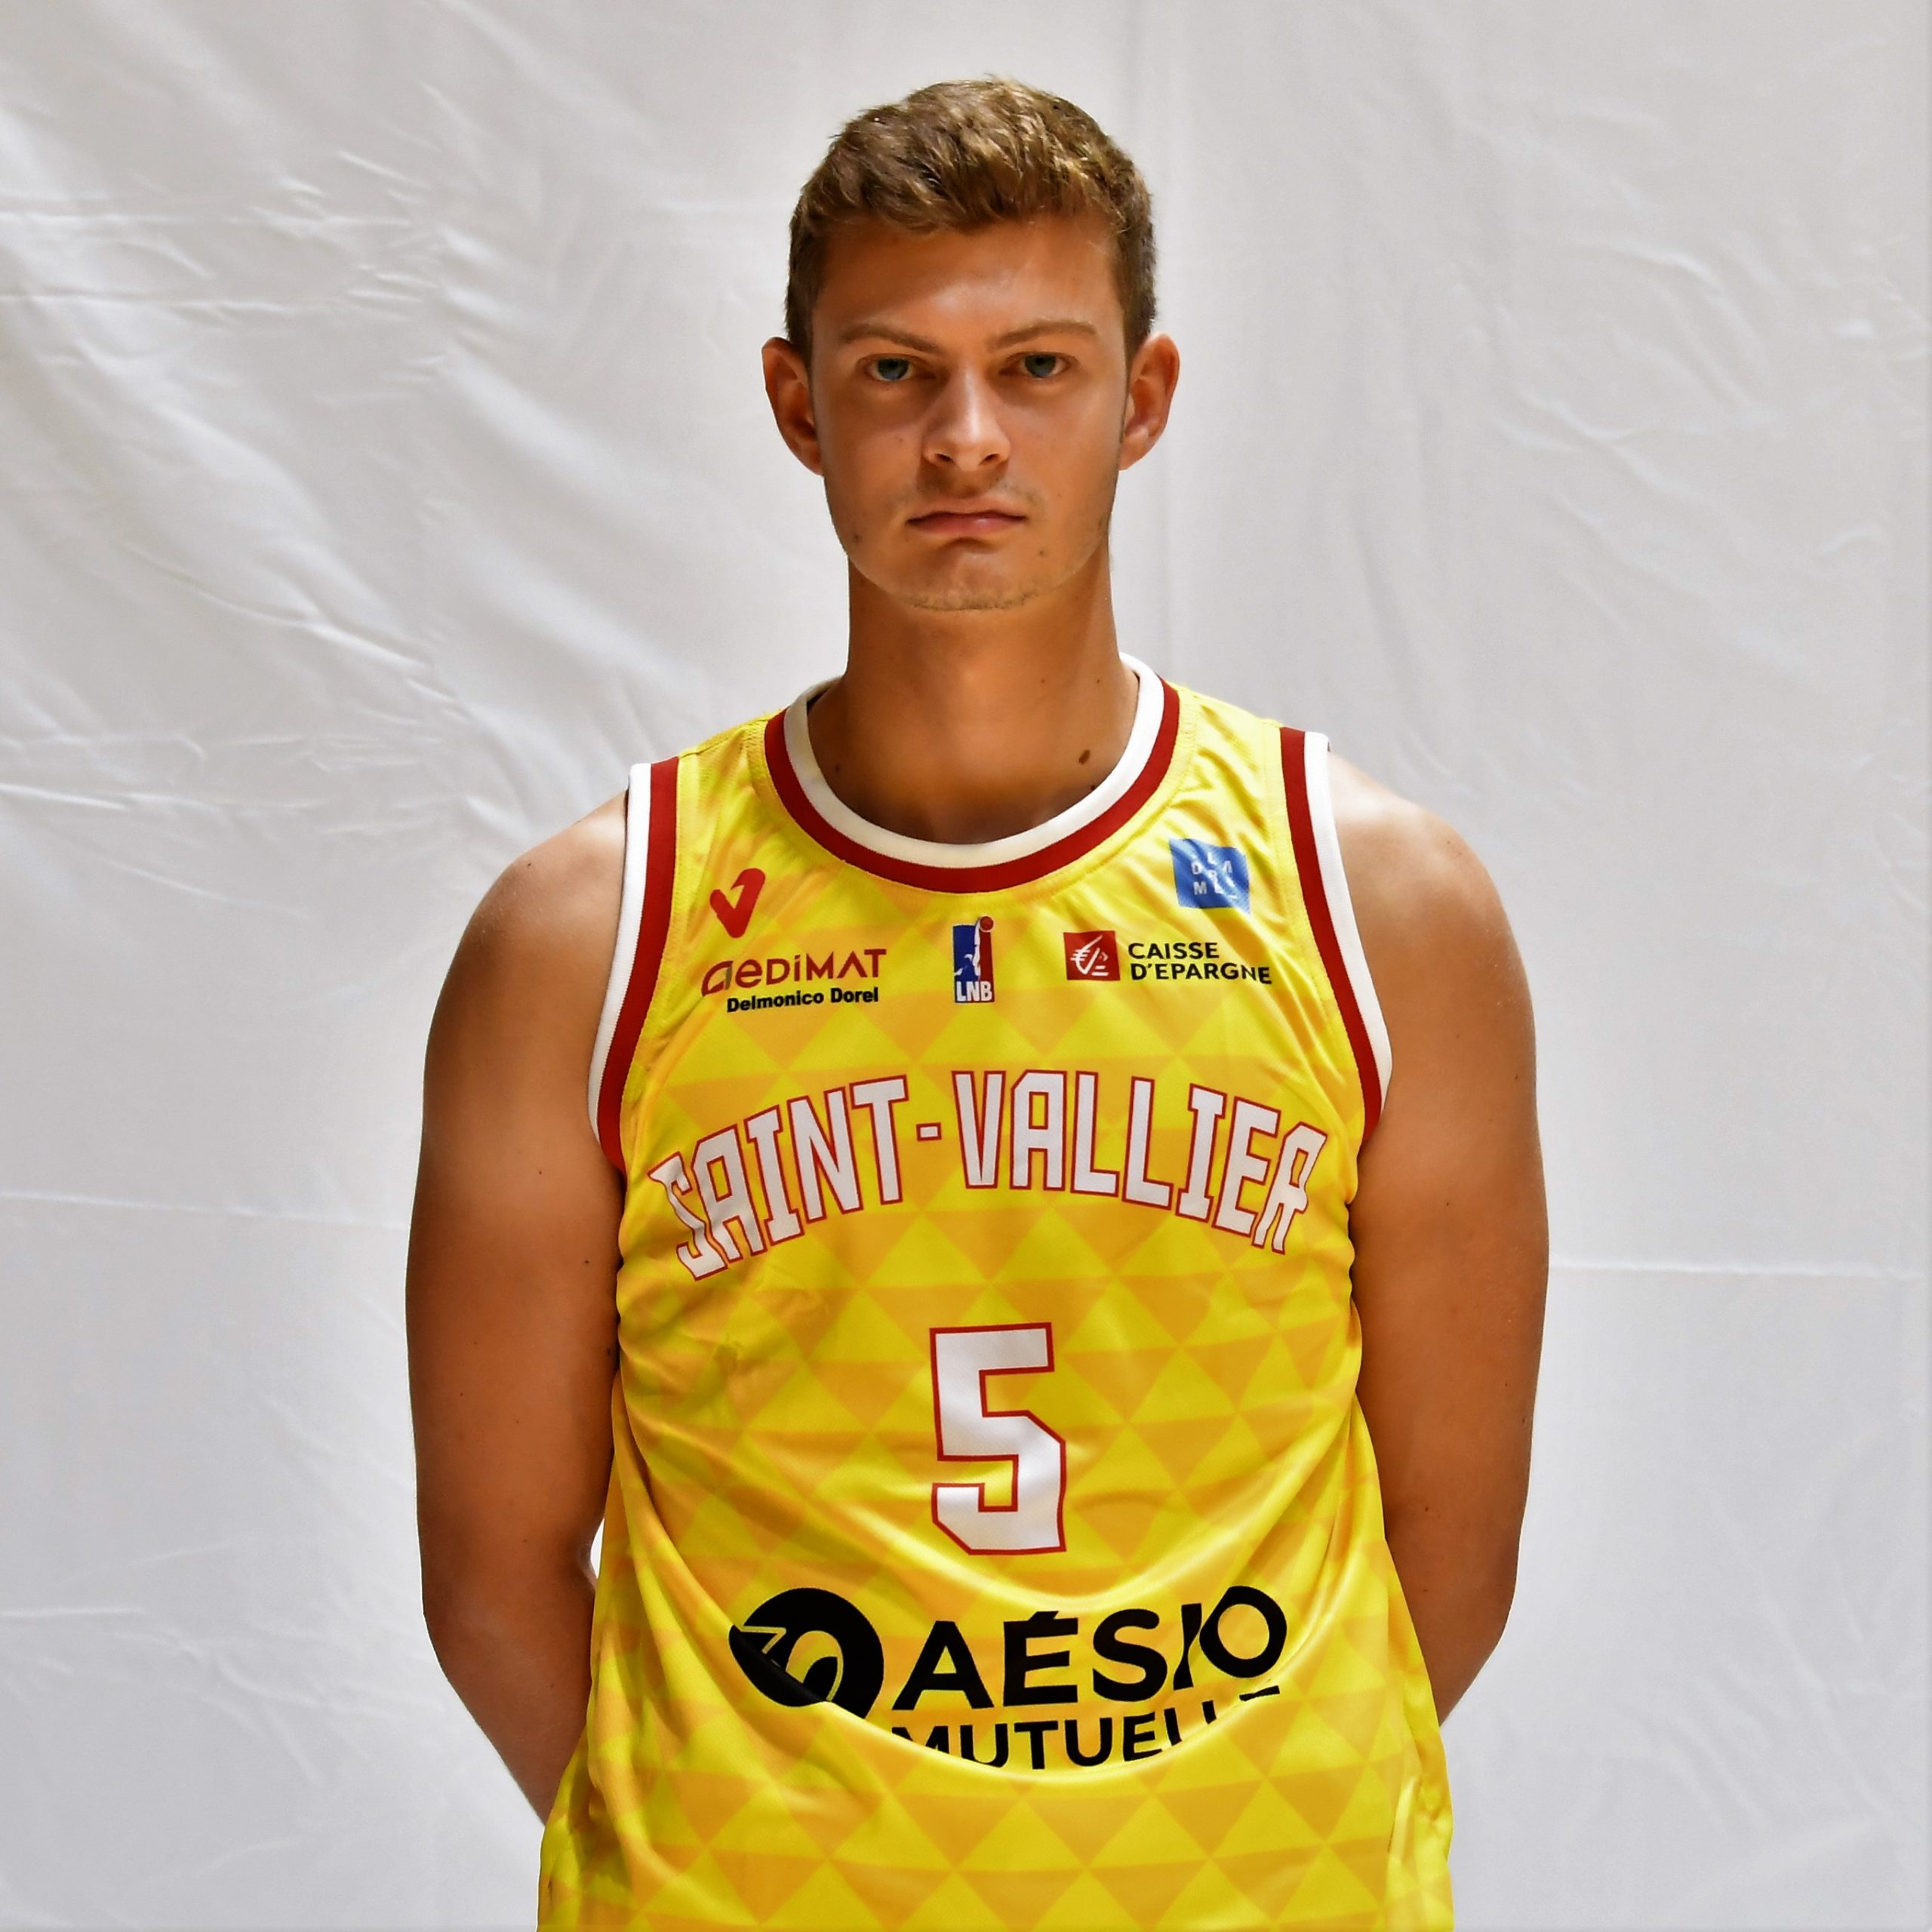 5 | Quentin COSTE